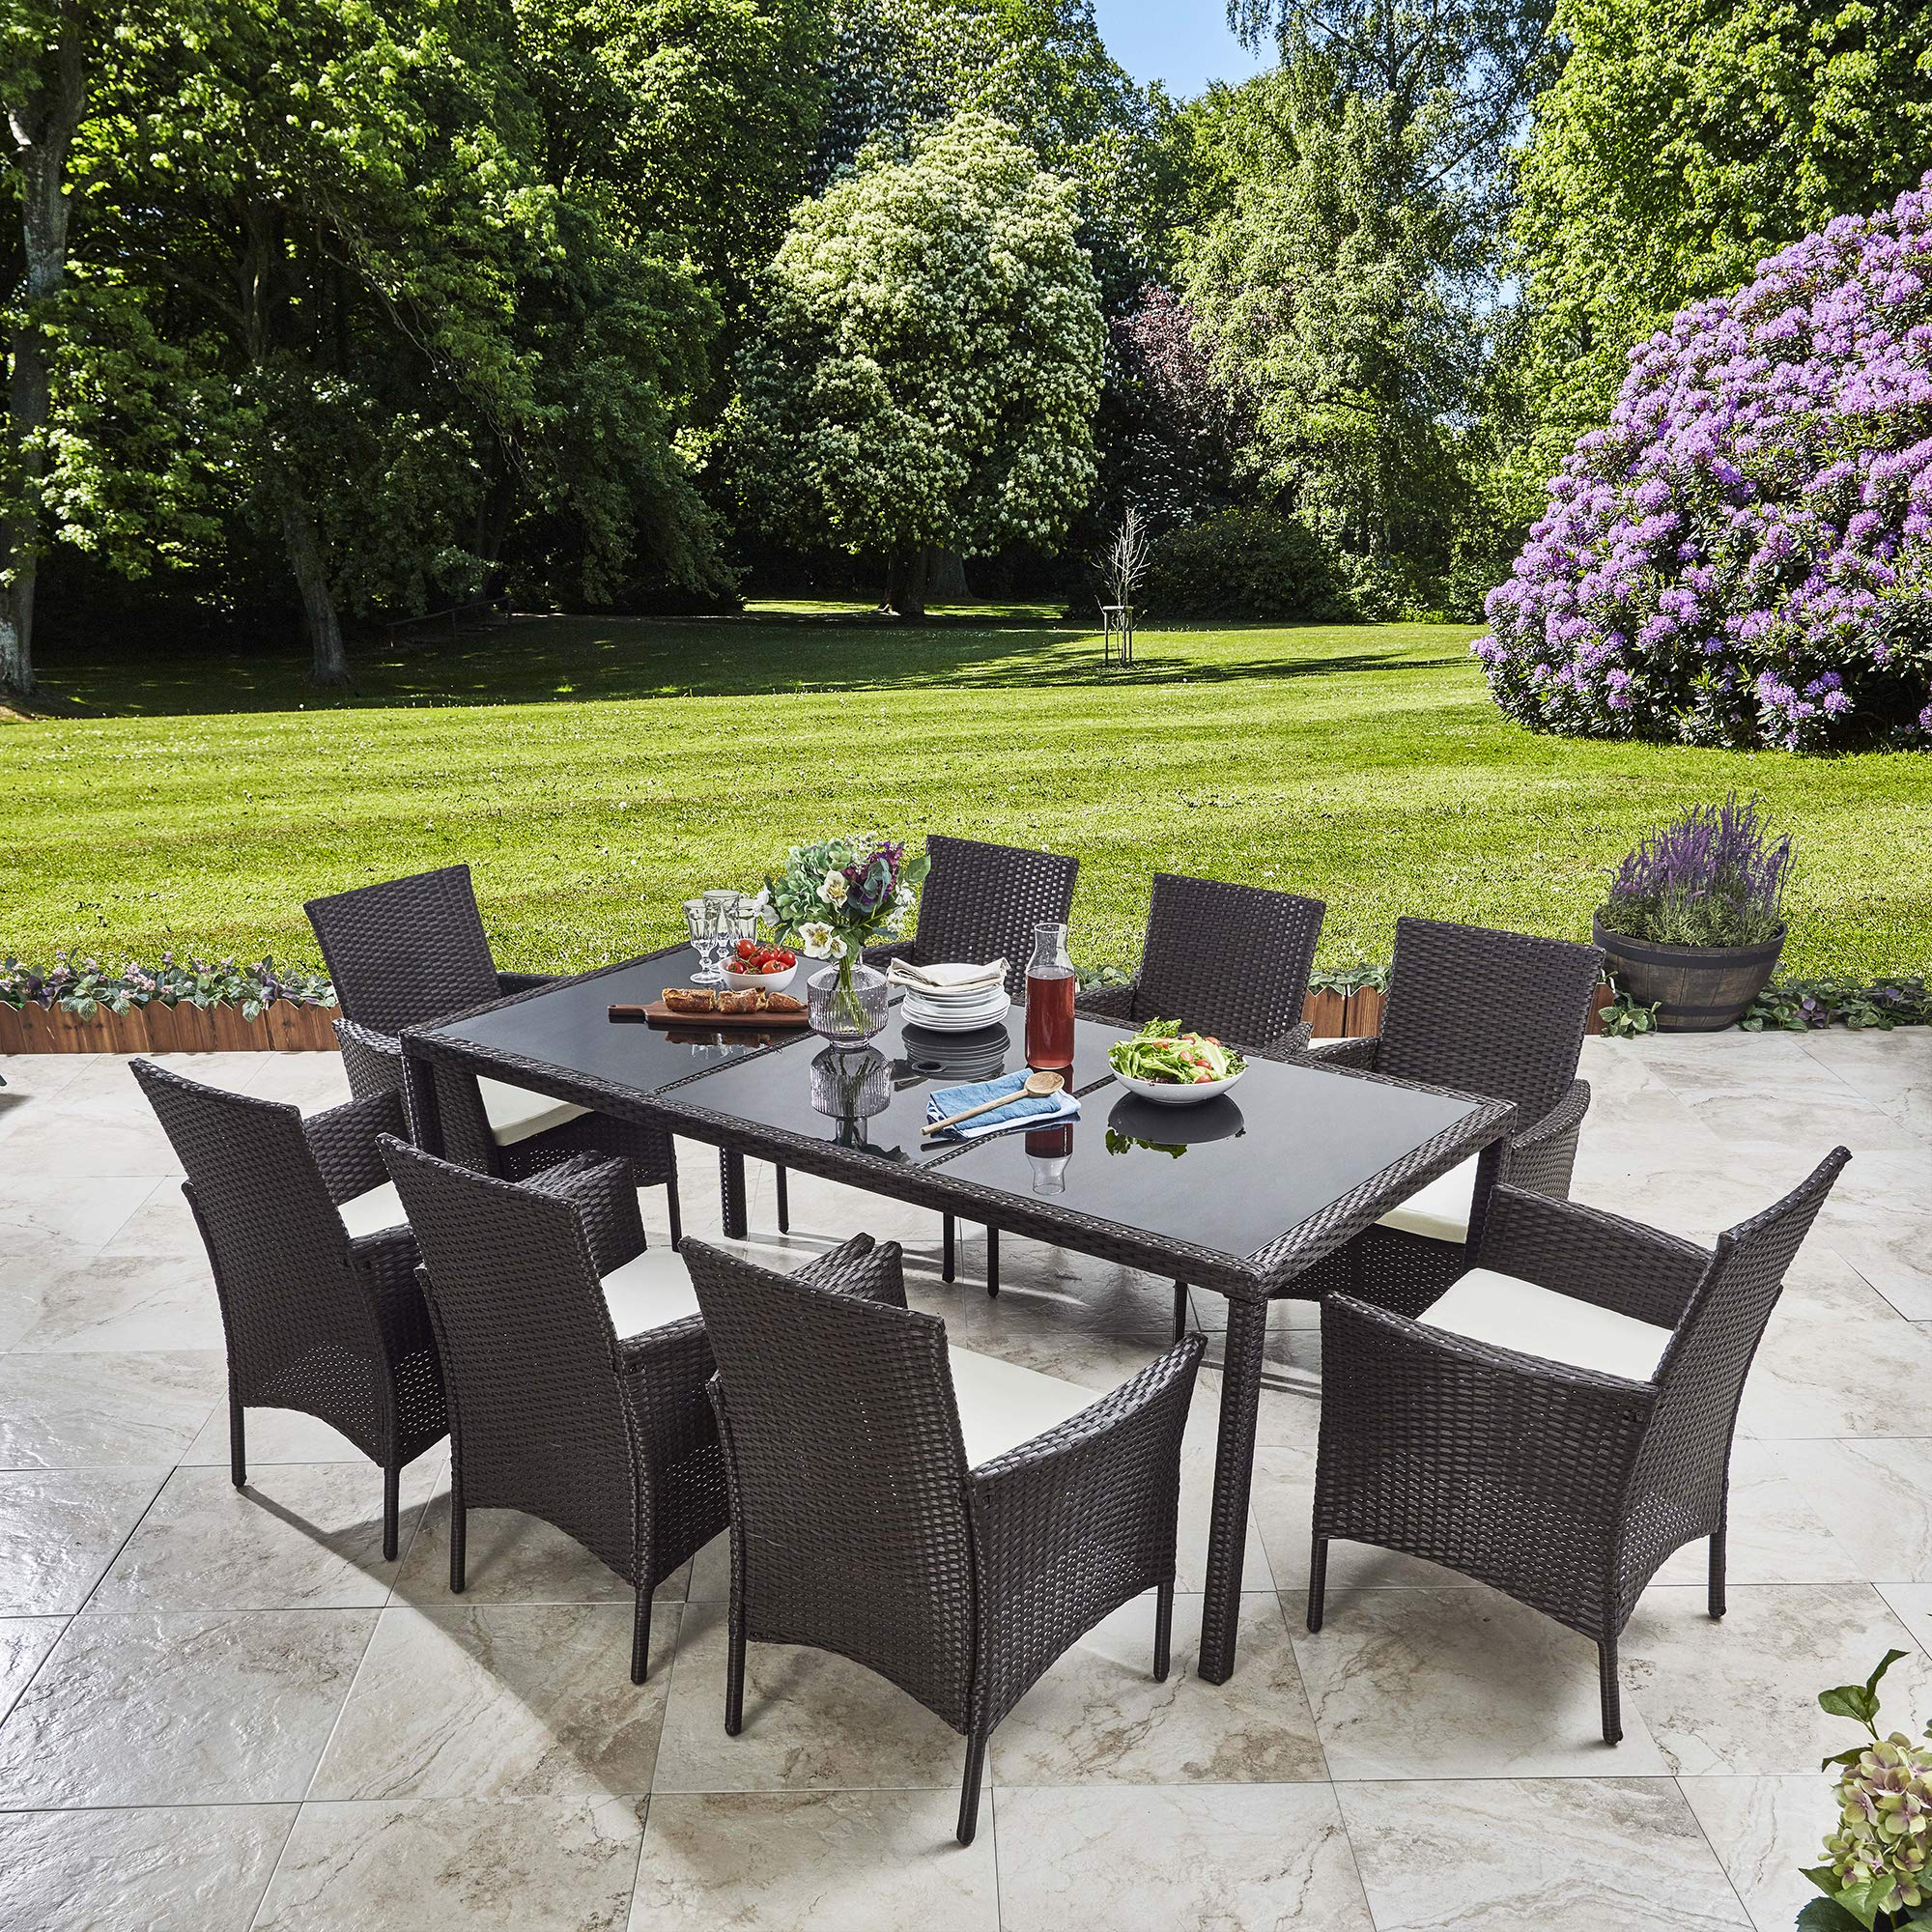 Bella Life Rattan Dining Furniture Set 9 Seater Dining Table + 9